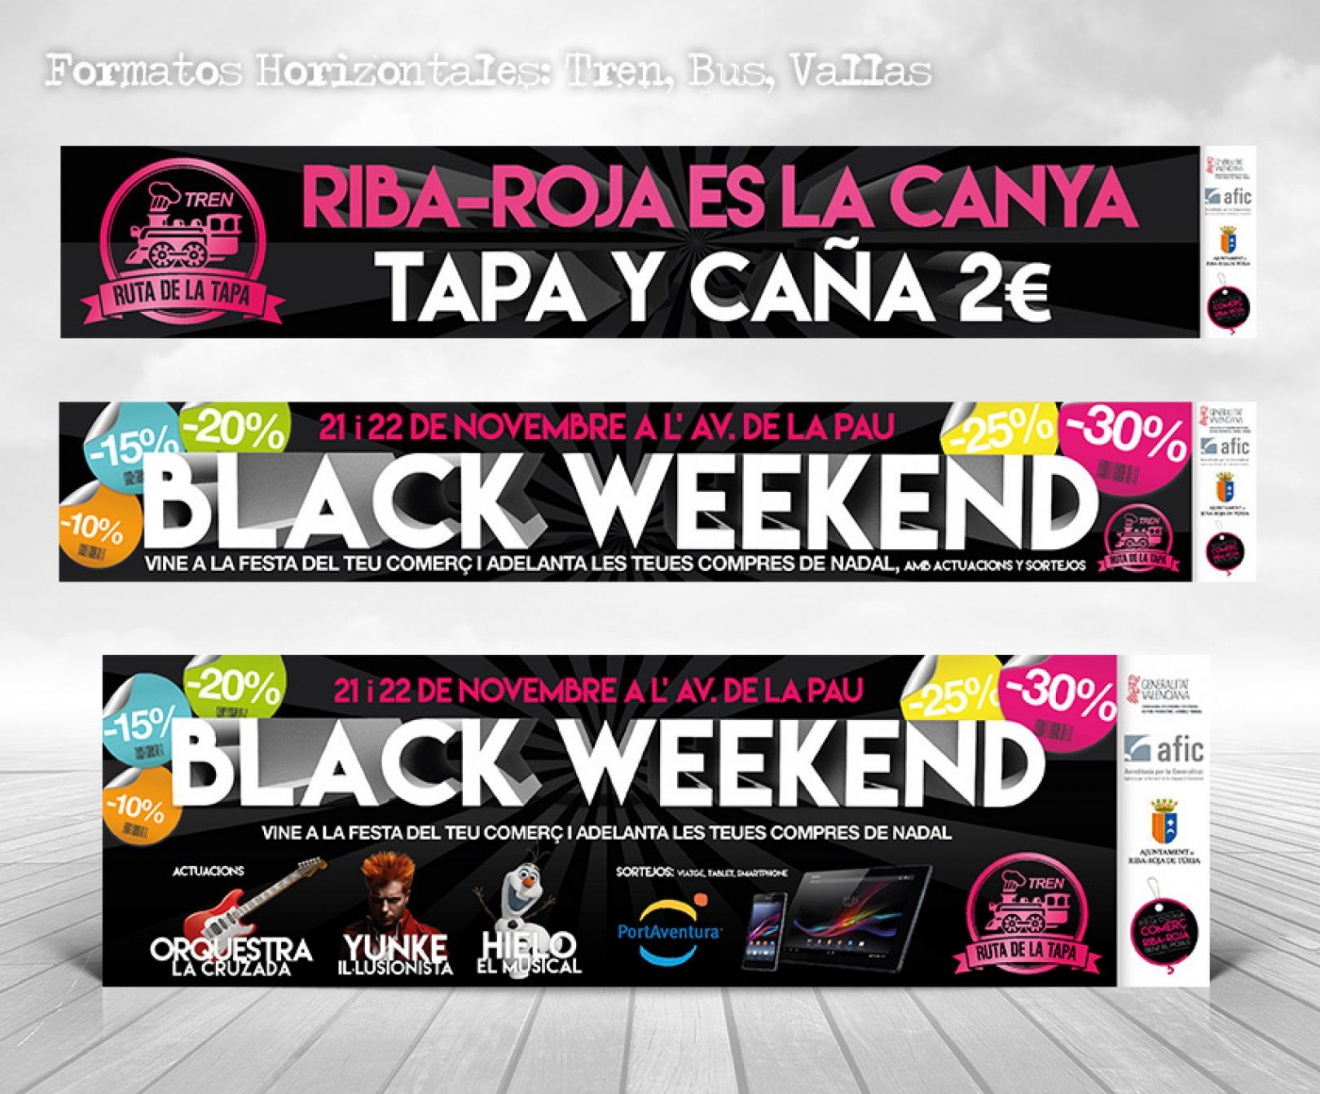 Black Weekend Feria de comercio